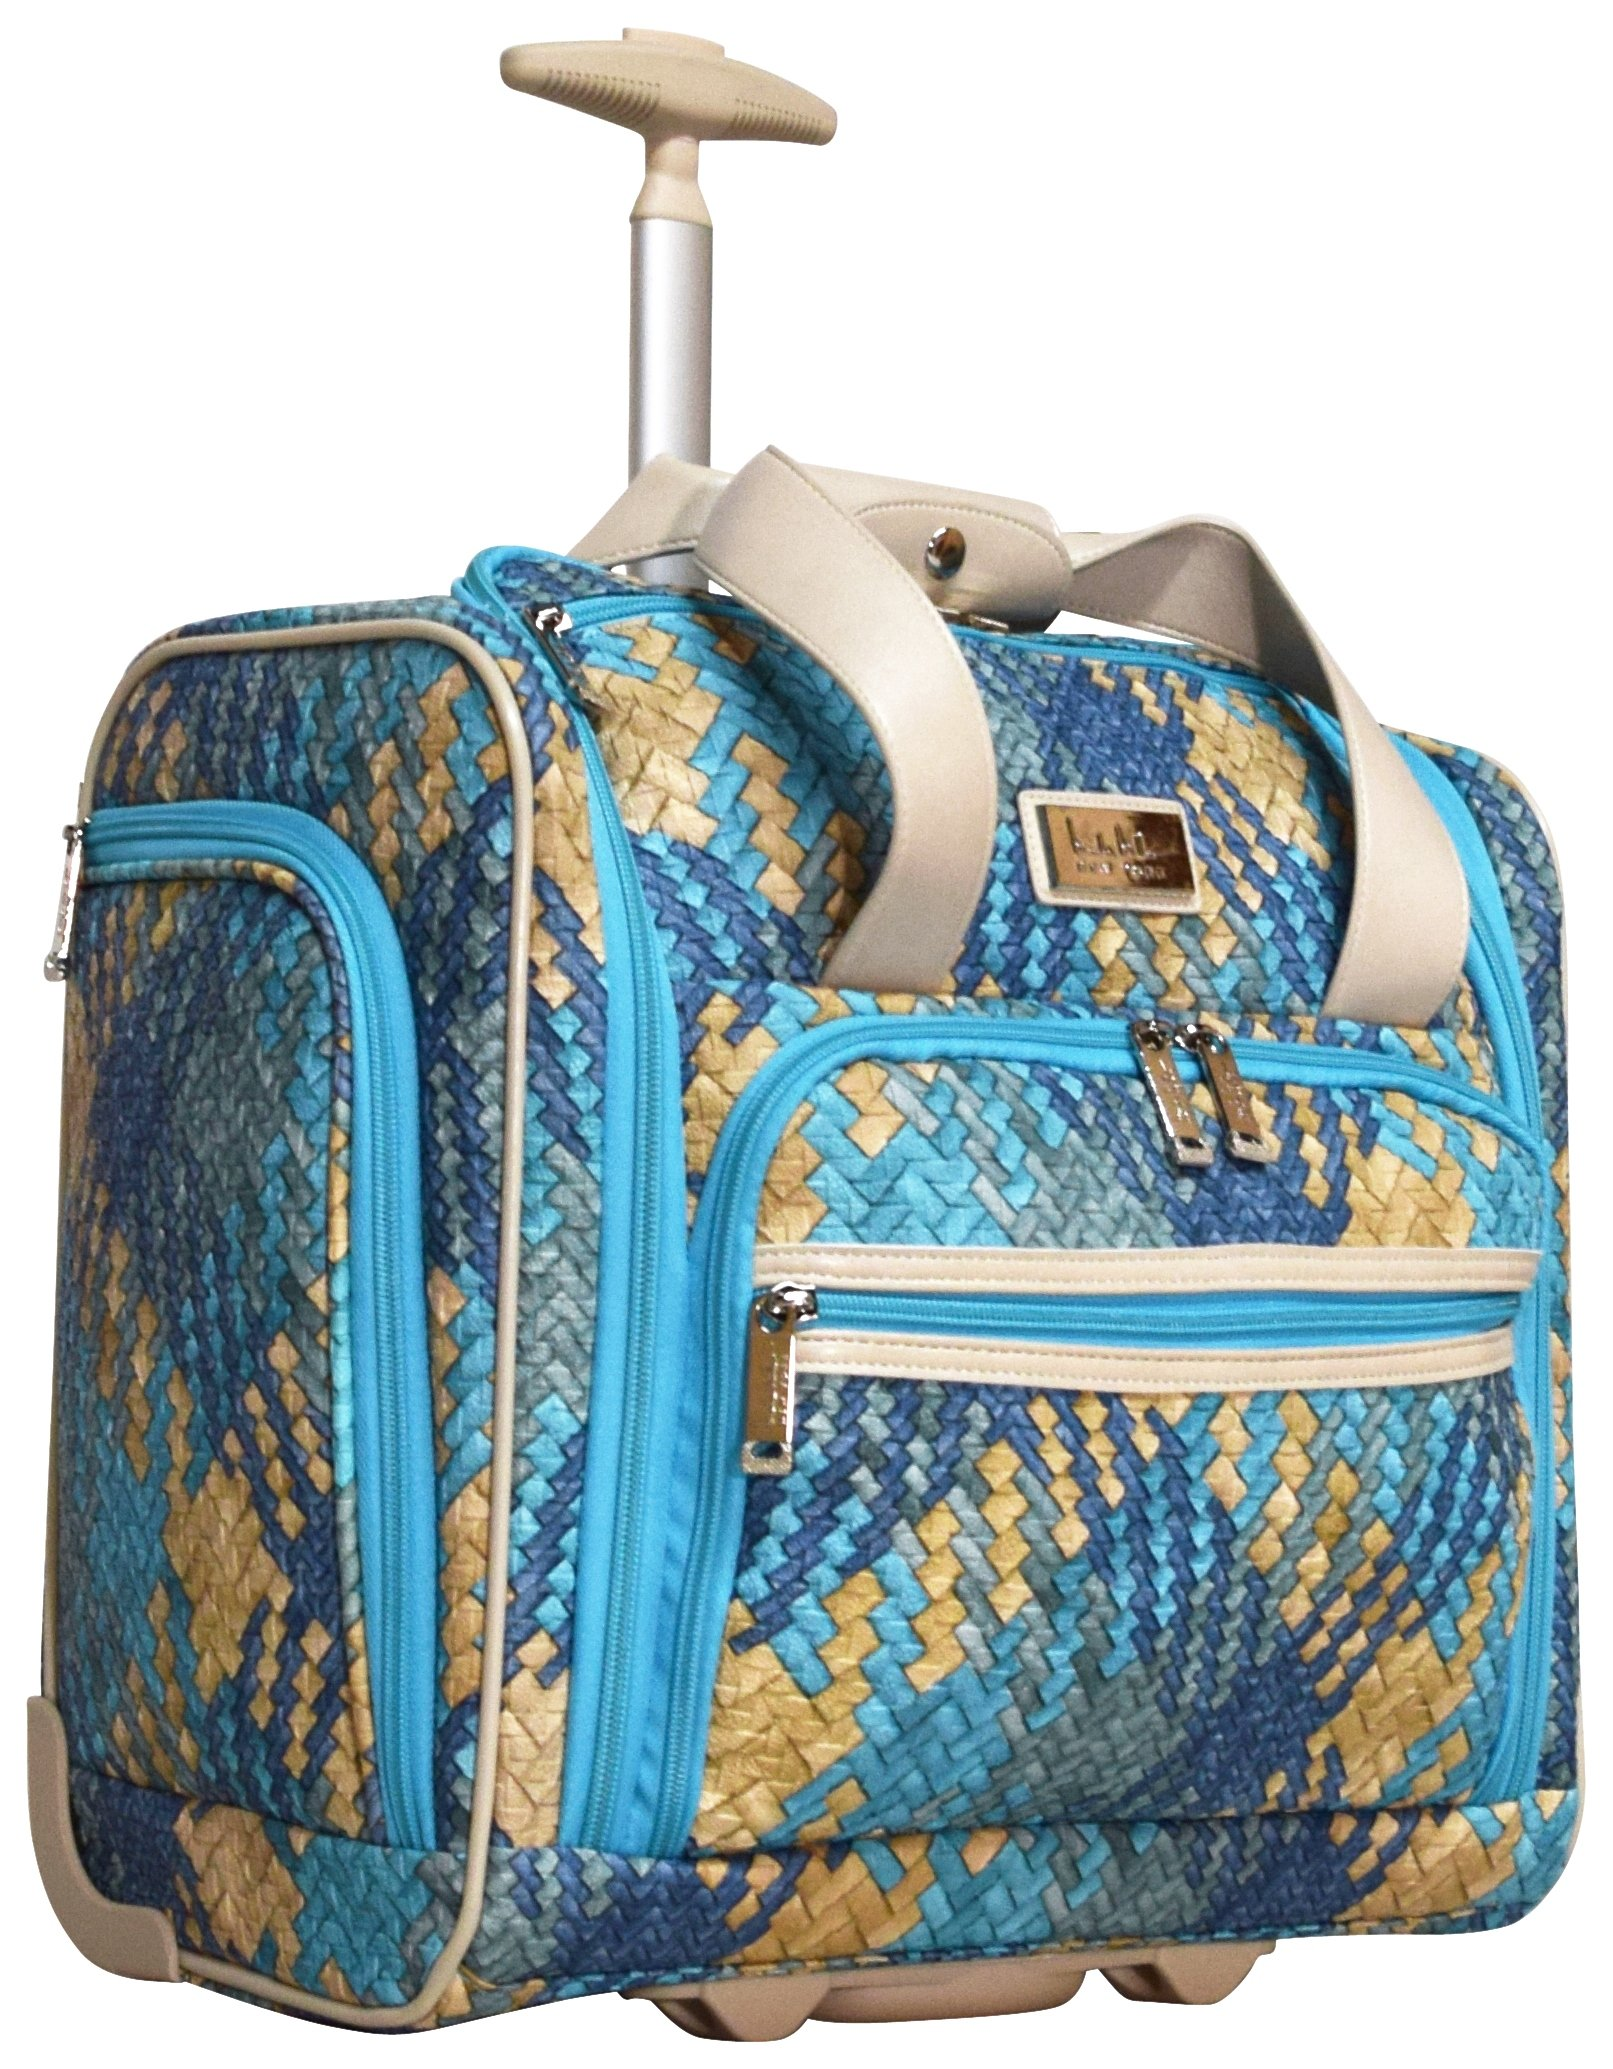 Nicole Miller Taylor Collection 15'' Under Seat Bag (Woven Teal) by Nicole Miller (Image #1)